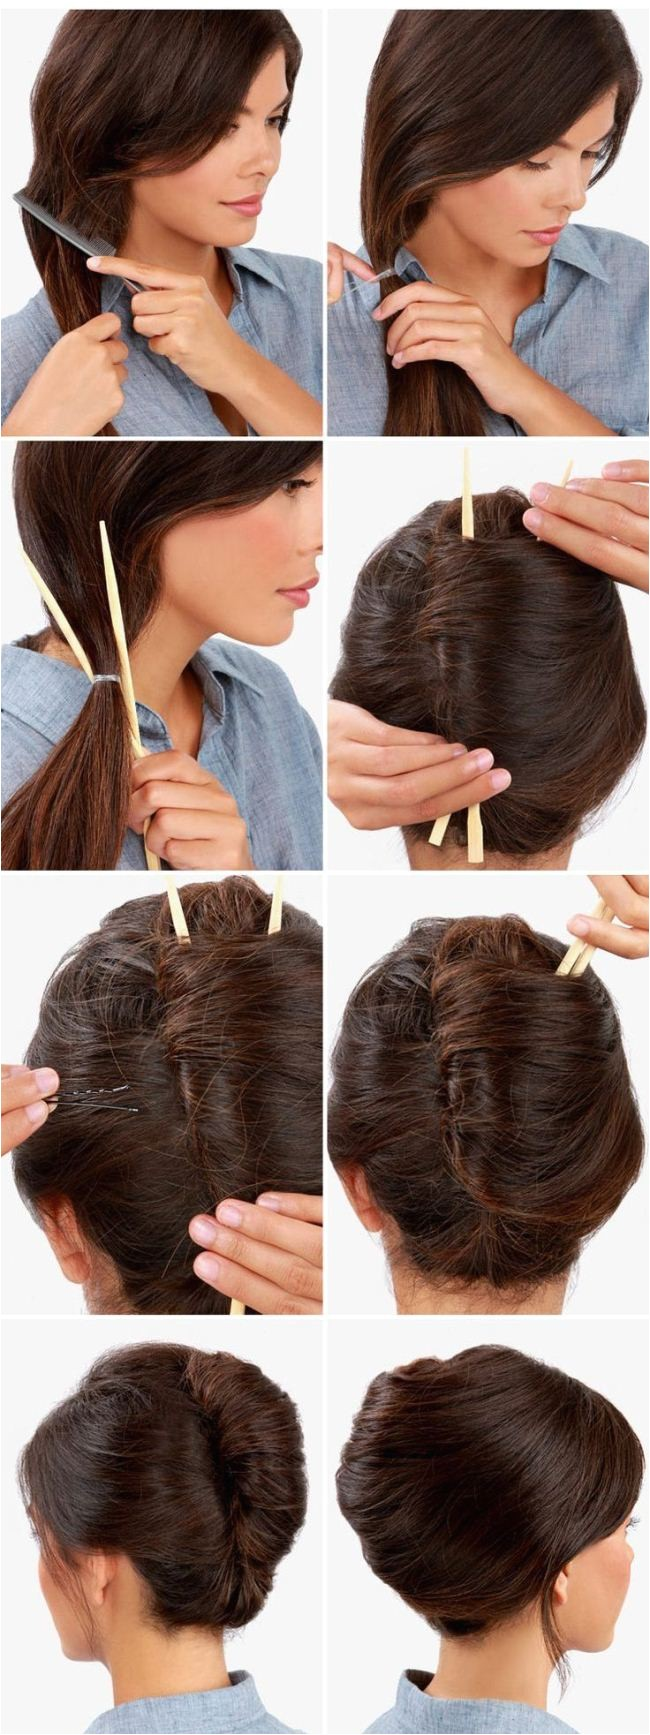 Hairstyle for Party Easy to Do I Want to Do Easy Party Hairstyles for Long Hair Step by